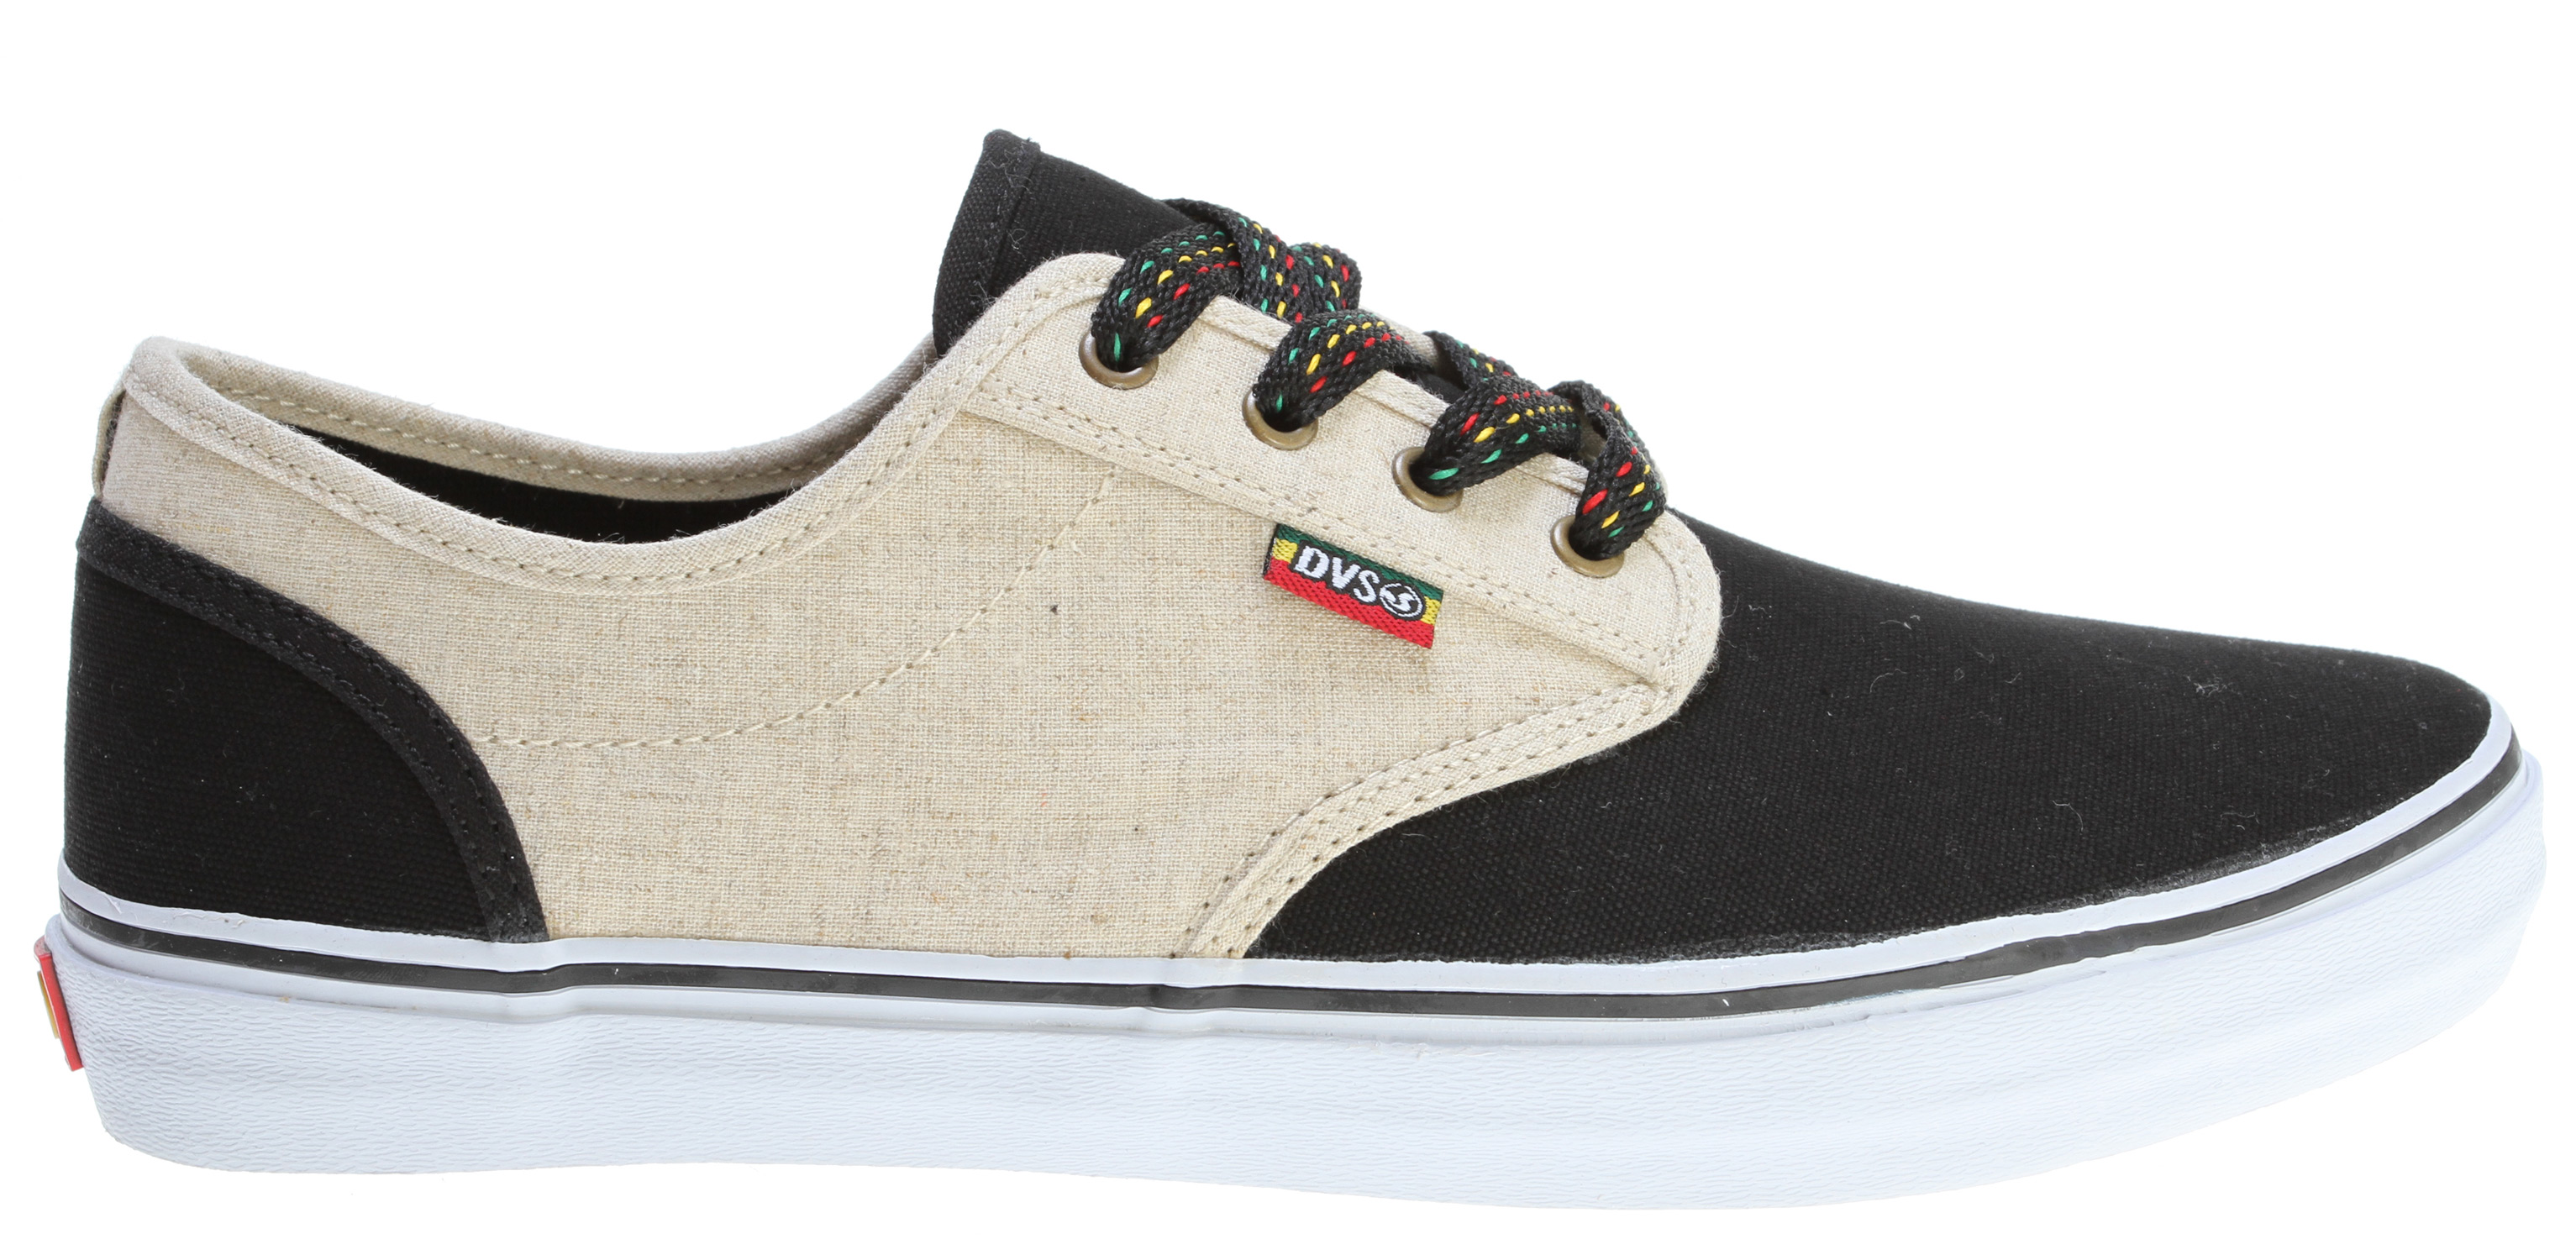 Skateboard Key Features of the DVS Rico Ct Skate Shoes: Textile binding One piece toe vamp Vulcanized outsole - $35.95